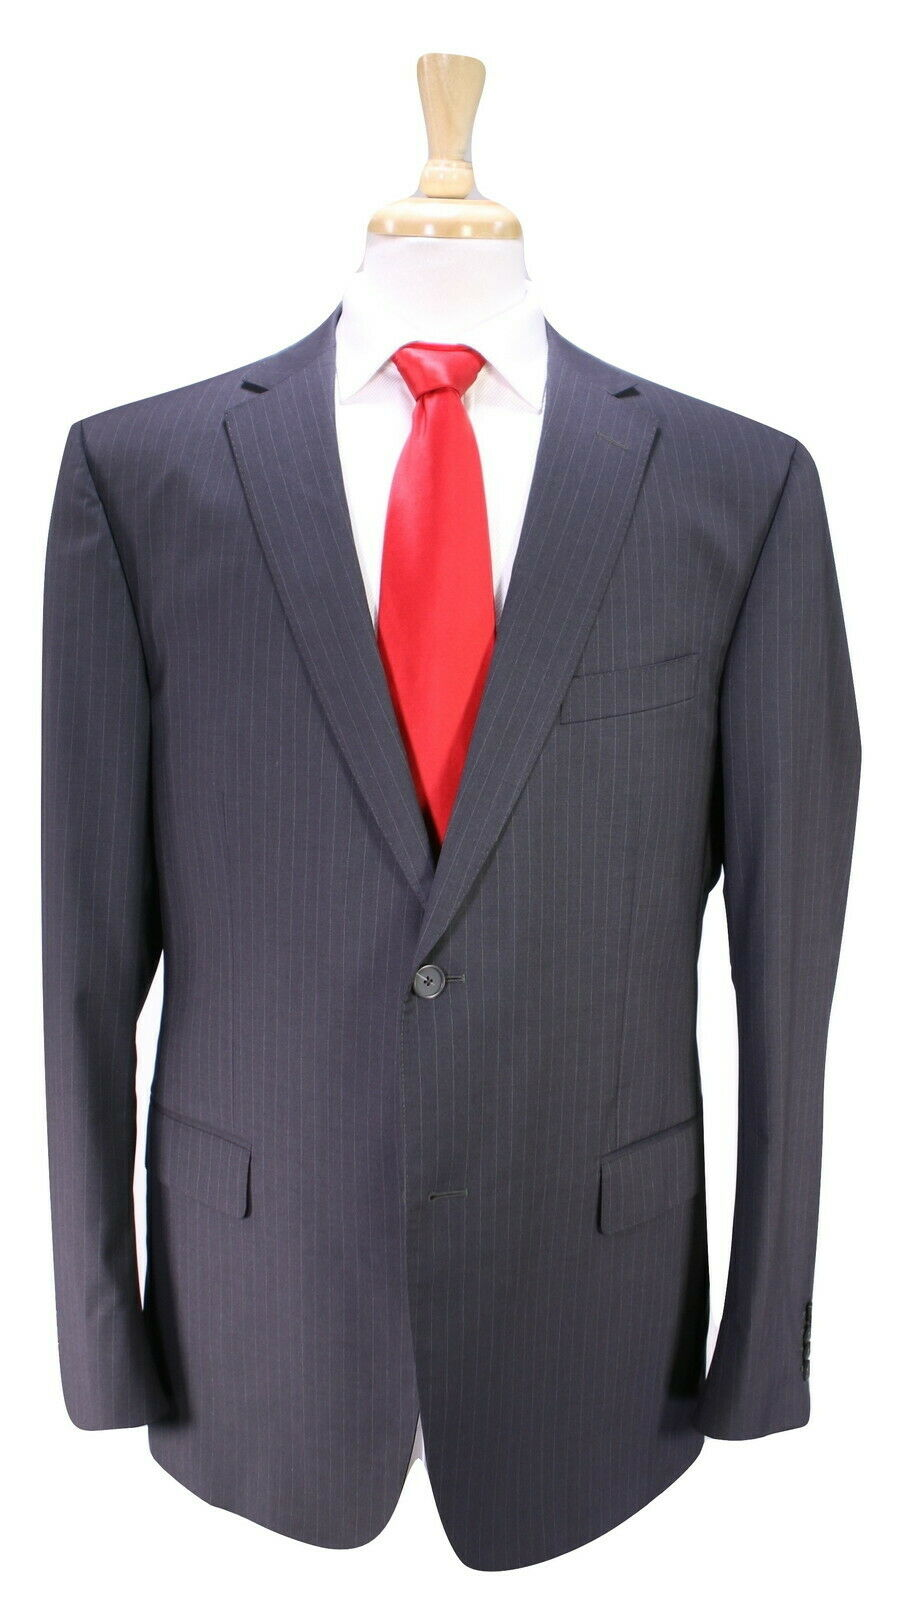 Z ZEGNA   Recent Dark Striped 2-Btn Modern City Fit 2-Btn Wool Suit 44R